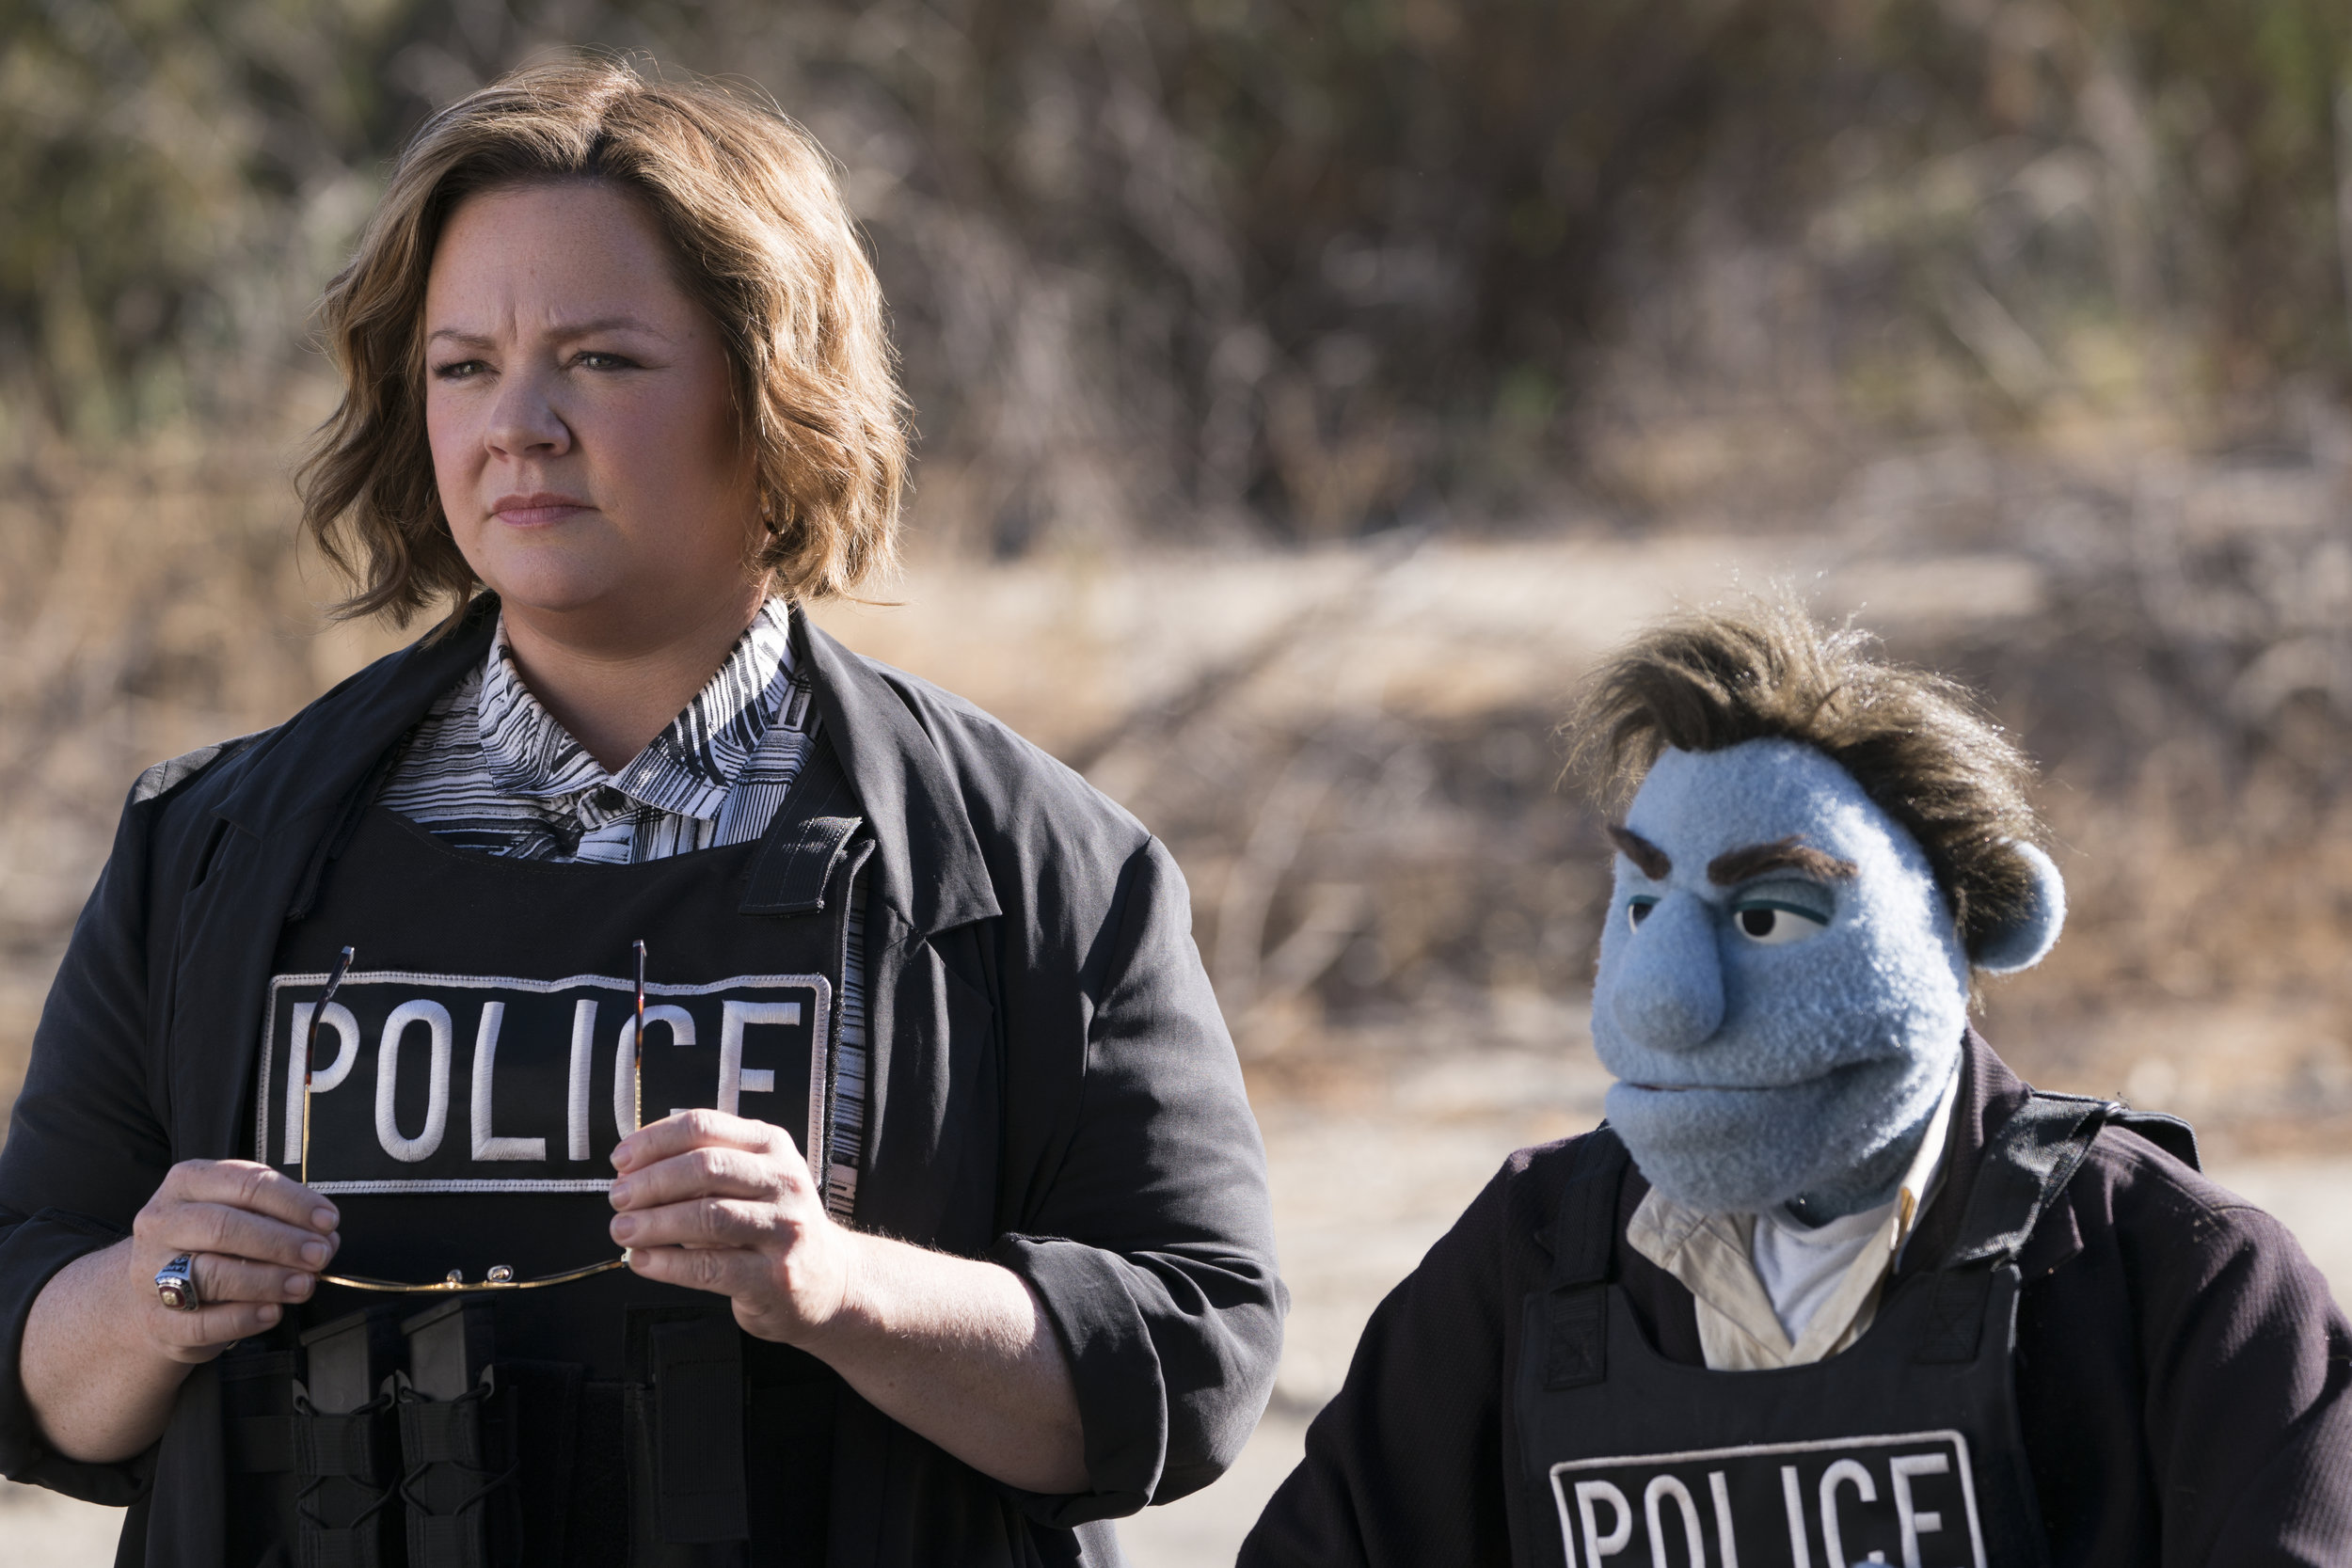 Henson Street Blues: Melissa McCarthy and her partner unravel murder most foul